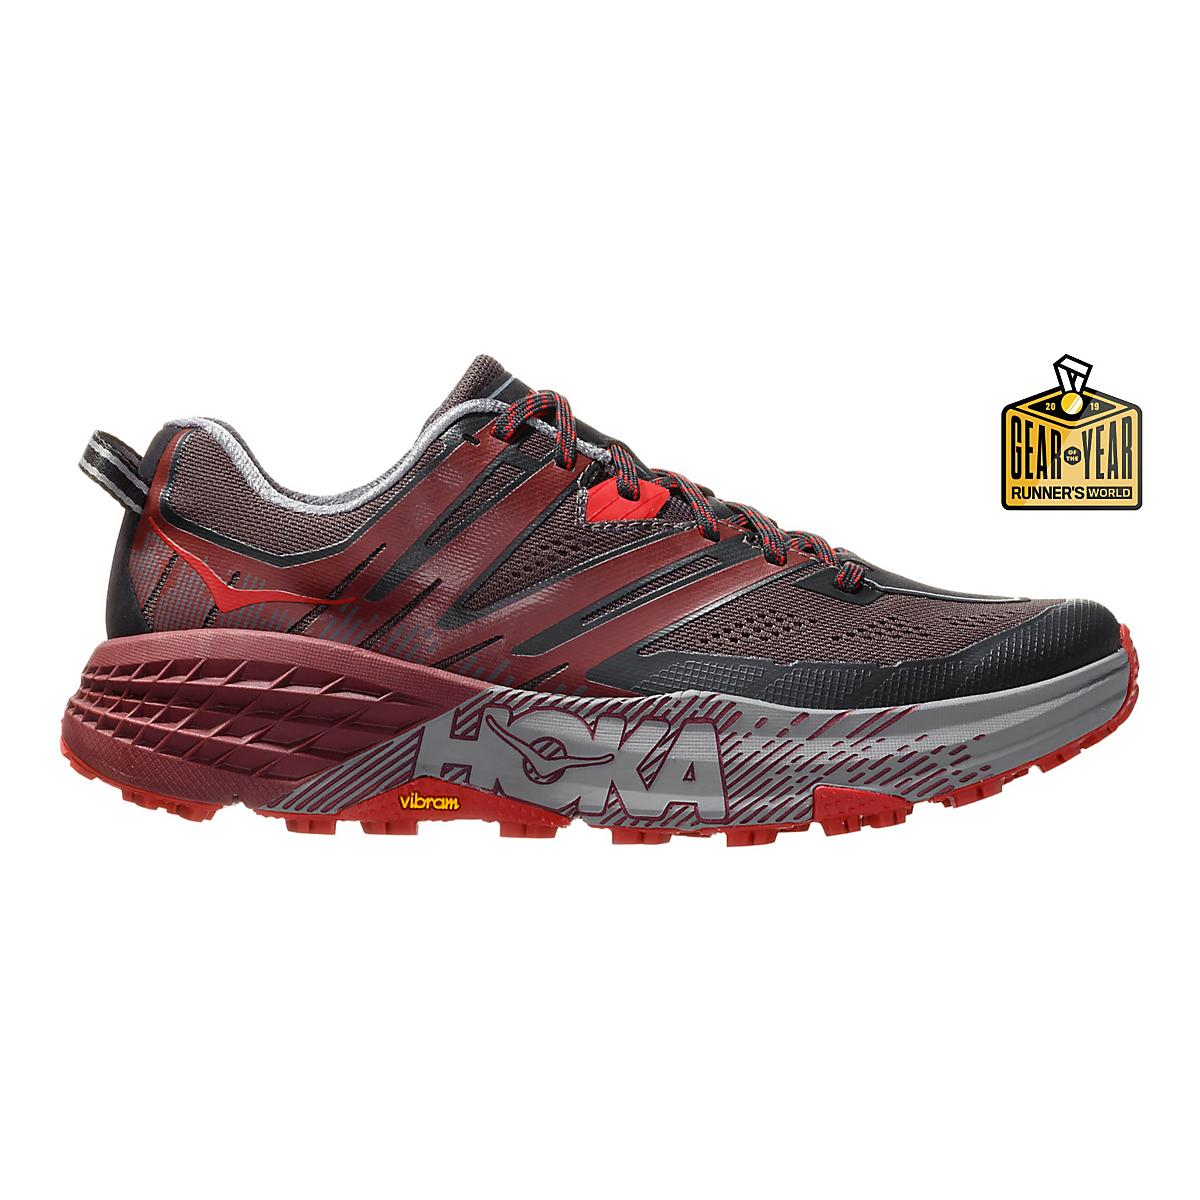 1b9f8cd9b22cd Mens Hoka One One Speedgoat 3 Trail Running Shoe at Road Runner Sports